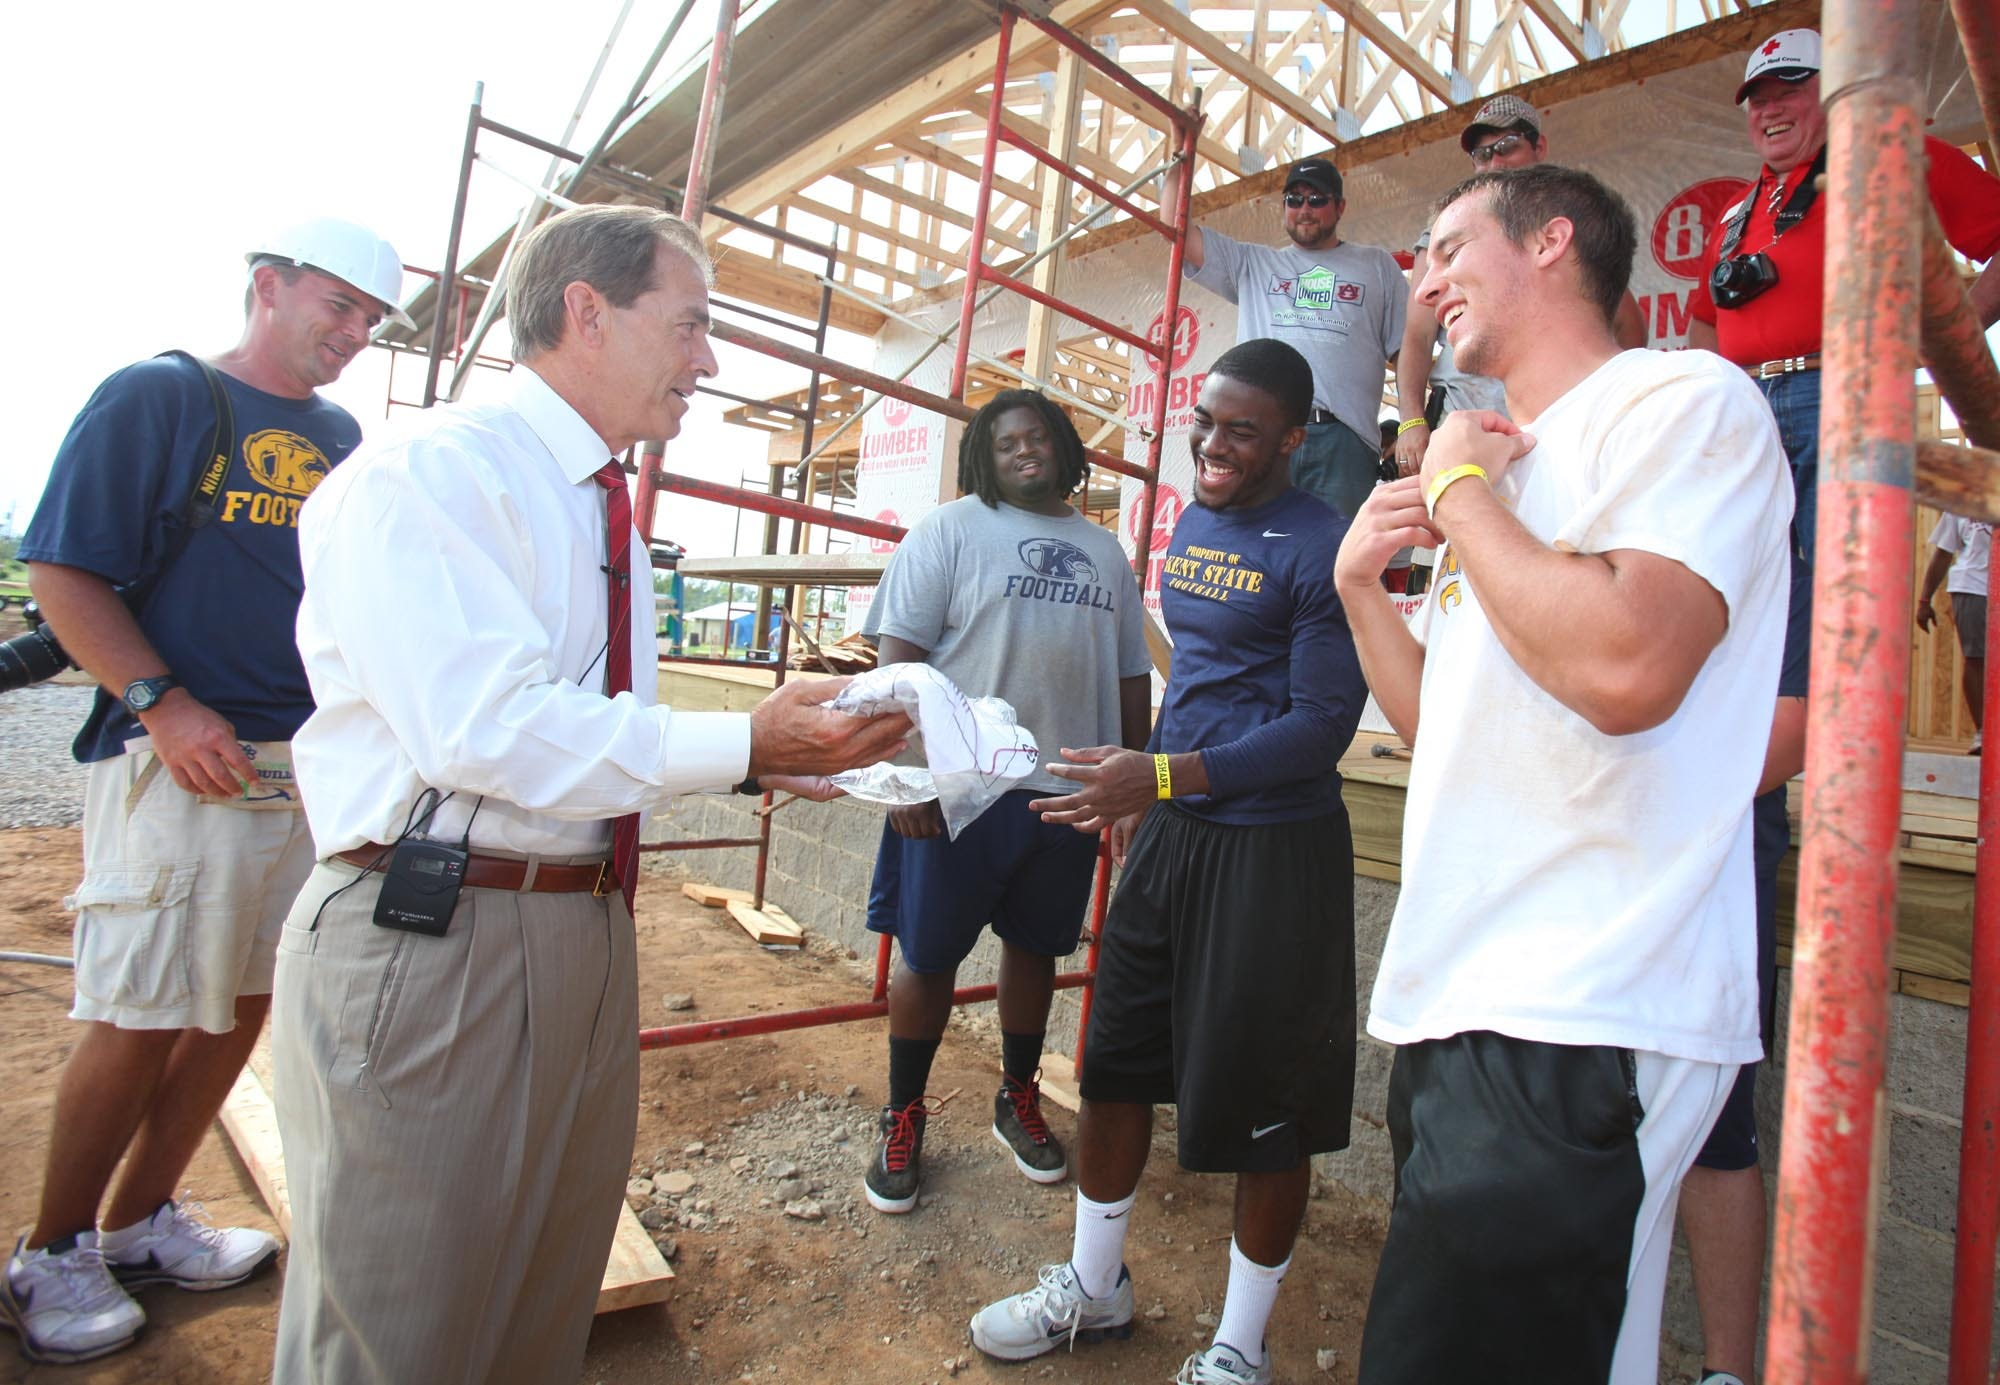 University of Alabama head football coach Nick Saban offers a shirt to Kent State player Terry Jacques, fourth from left, at a Habitat for Humanity house in the Holt community of Tuscaloosa, Ala. Friday, July 22, 2011. Kent State players, Alabama players and Alabama and Auburn students volunteered to rebuild a home that was devastated by the April 27th tornado.  [Staff file photo]